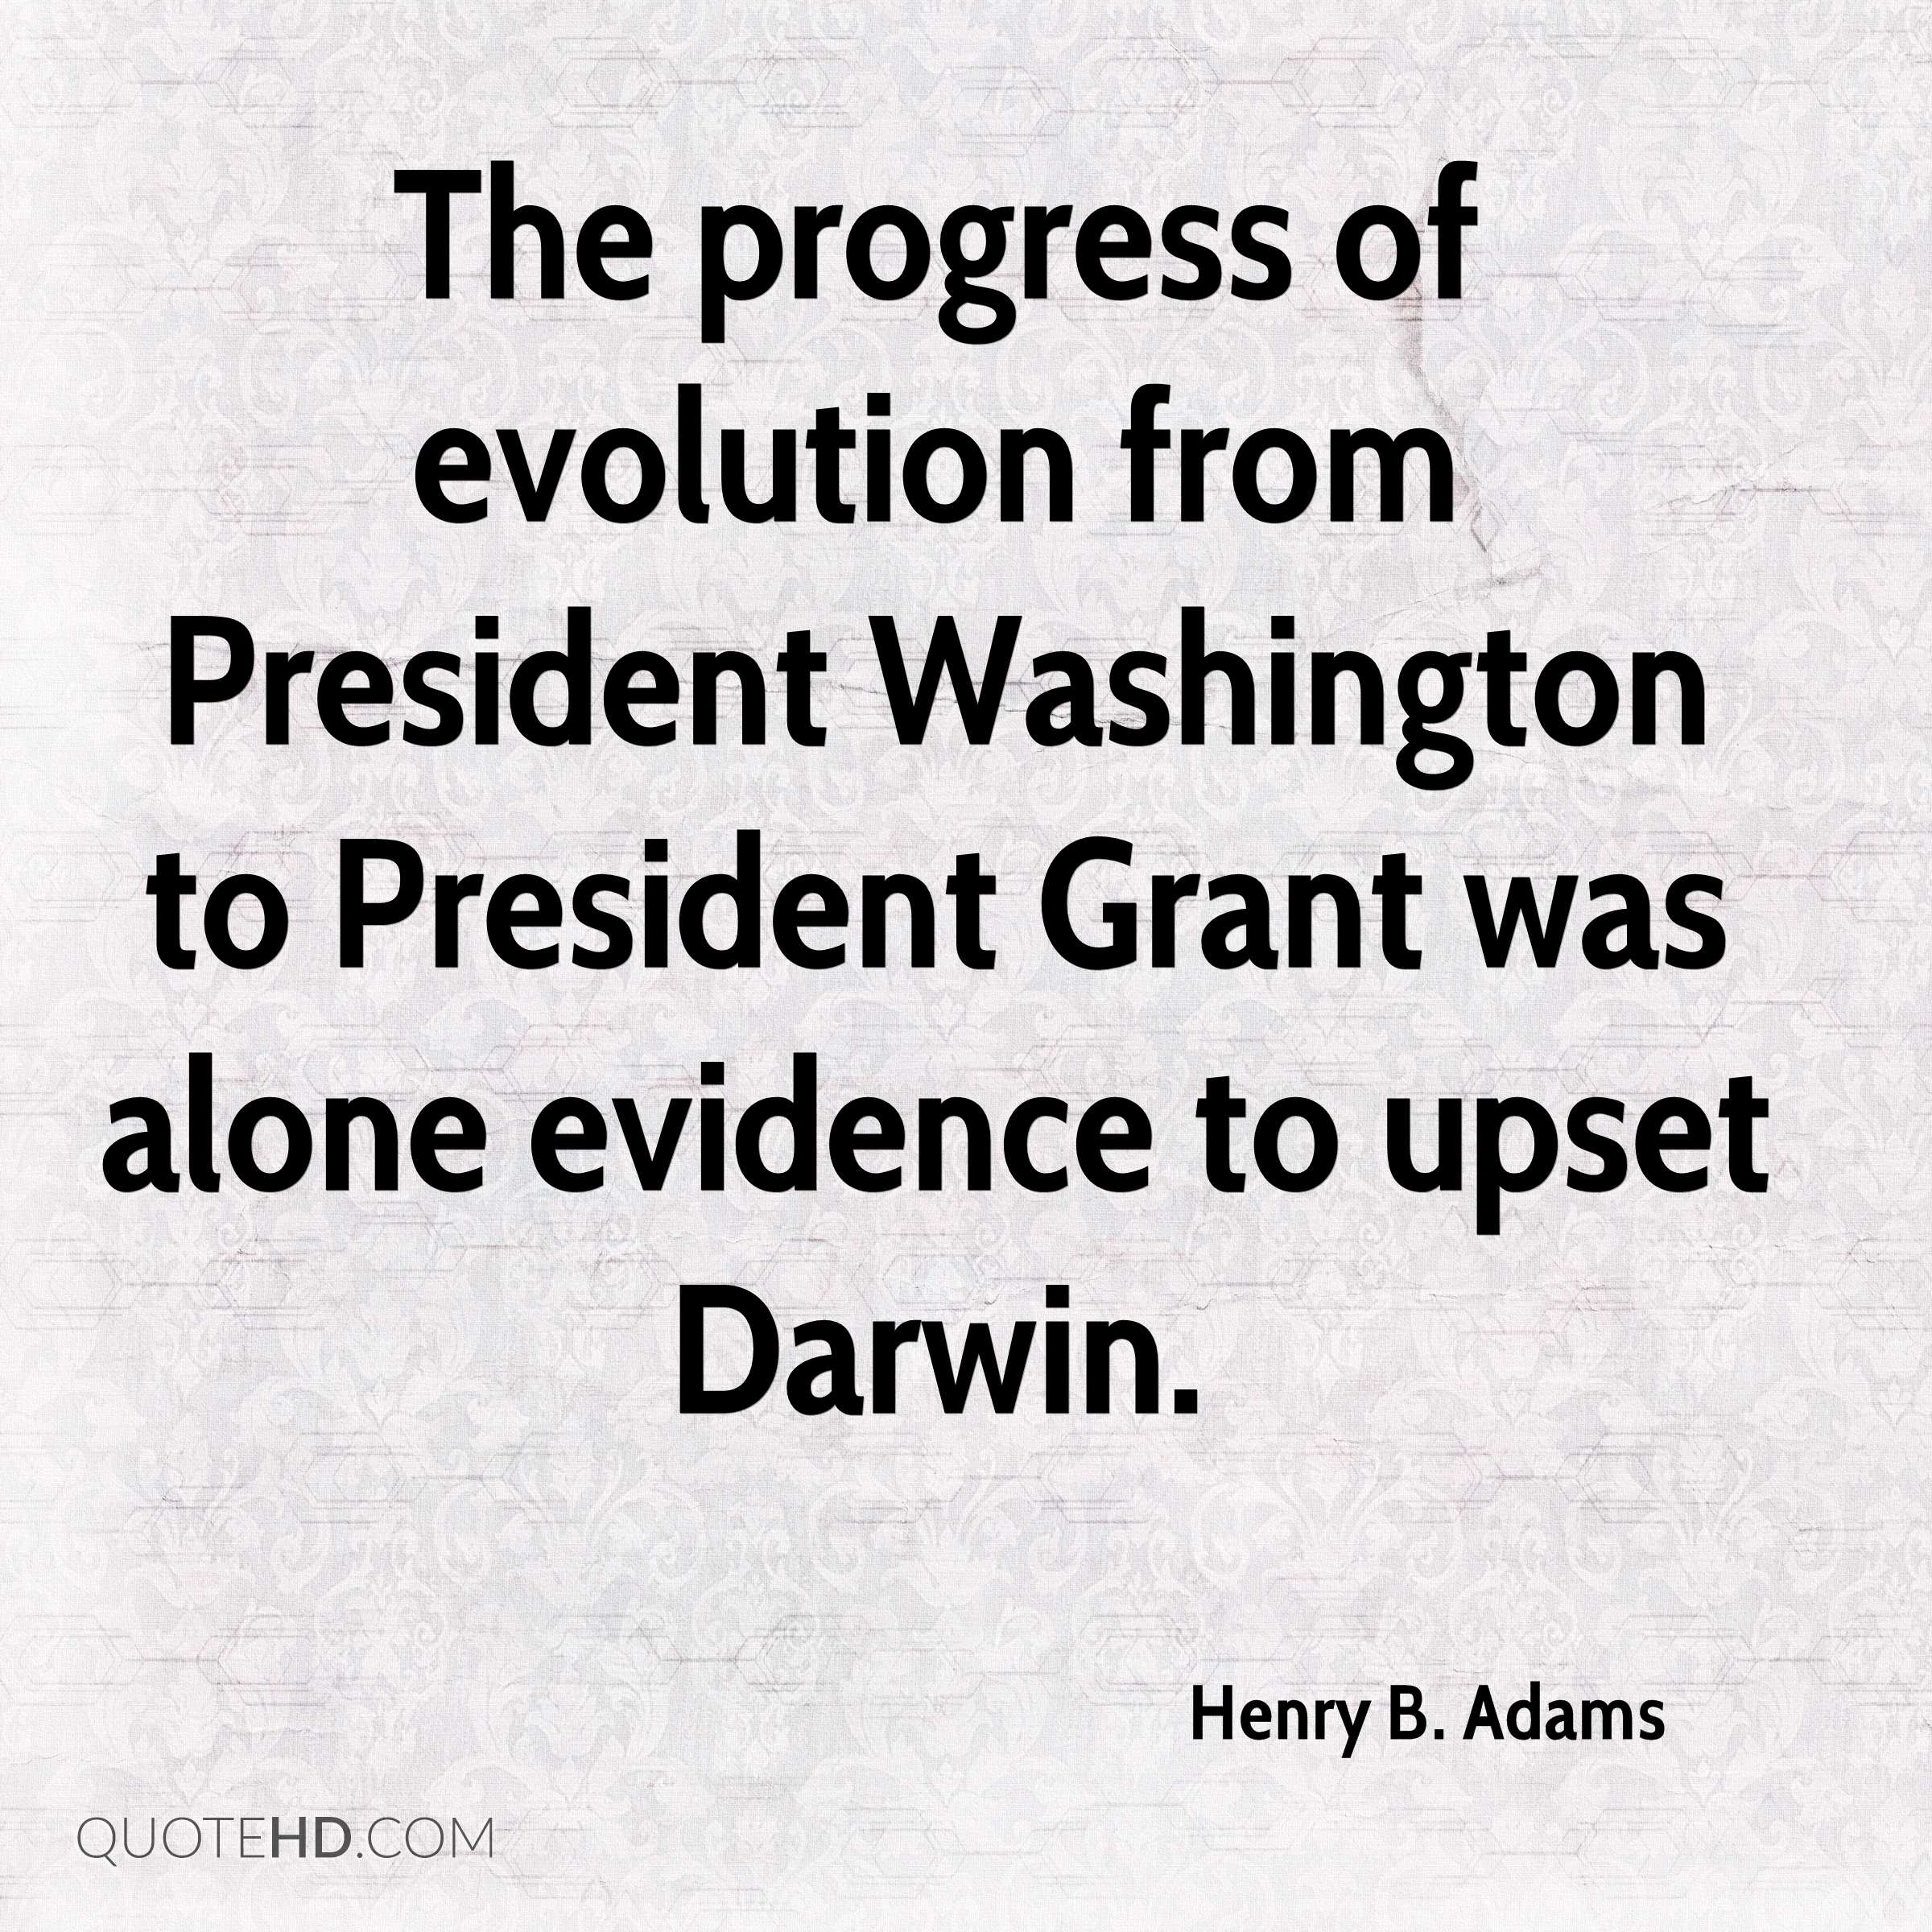 The progress of evolution from President Washington to President Grant was alone evidence to upset Darwin.